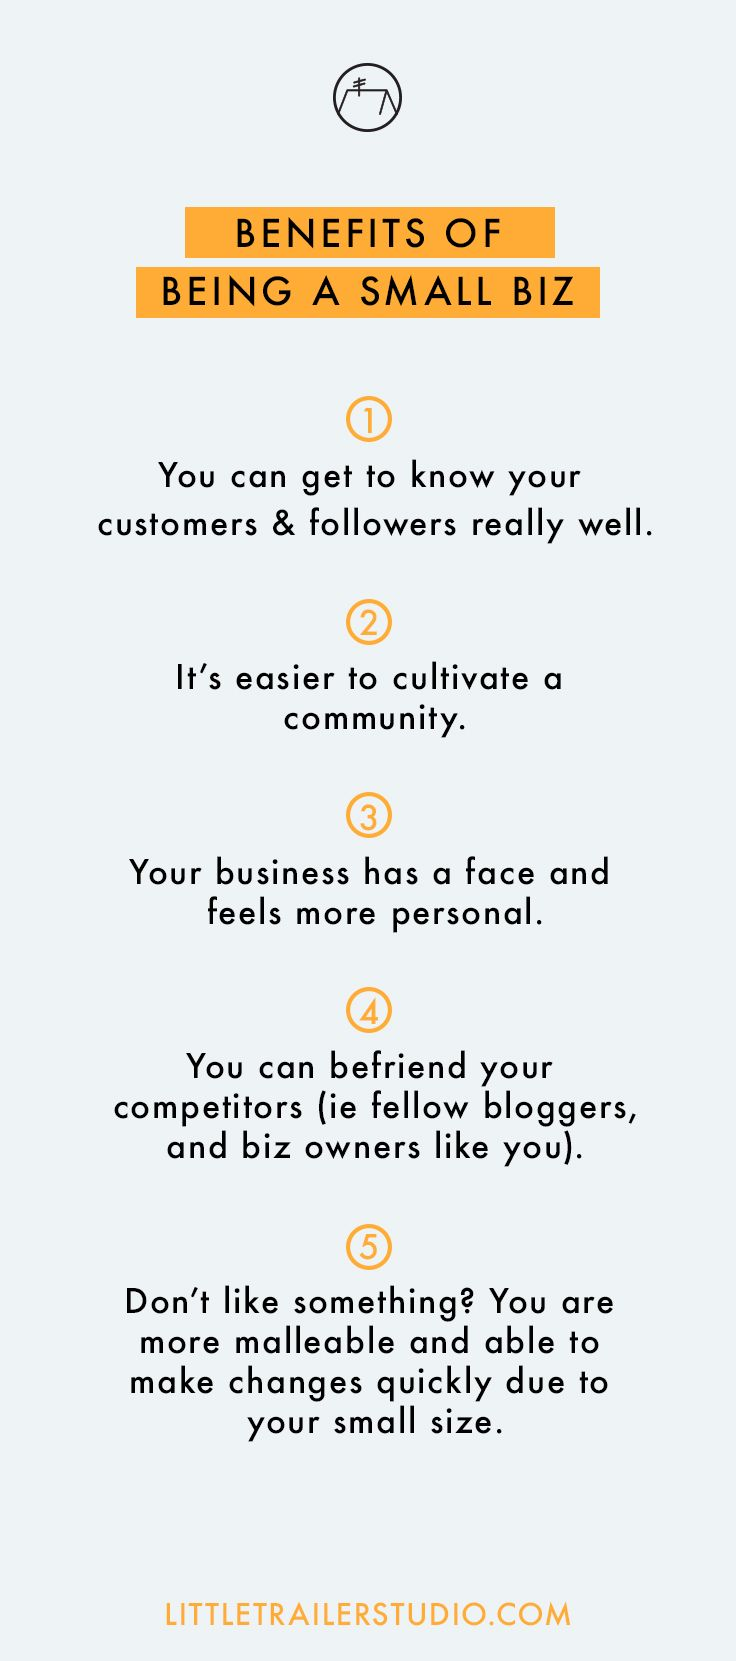 Being small has many great benefits. One of my favorites is being able to be really malleable. Click through to read more about how you can use your small business size to your advantage.